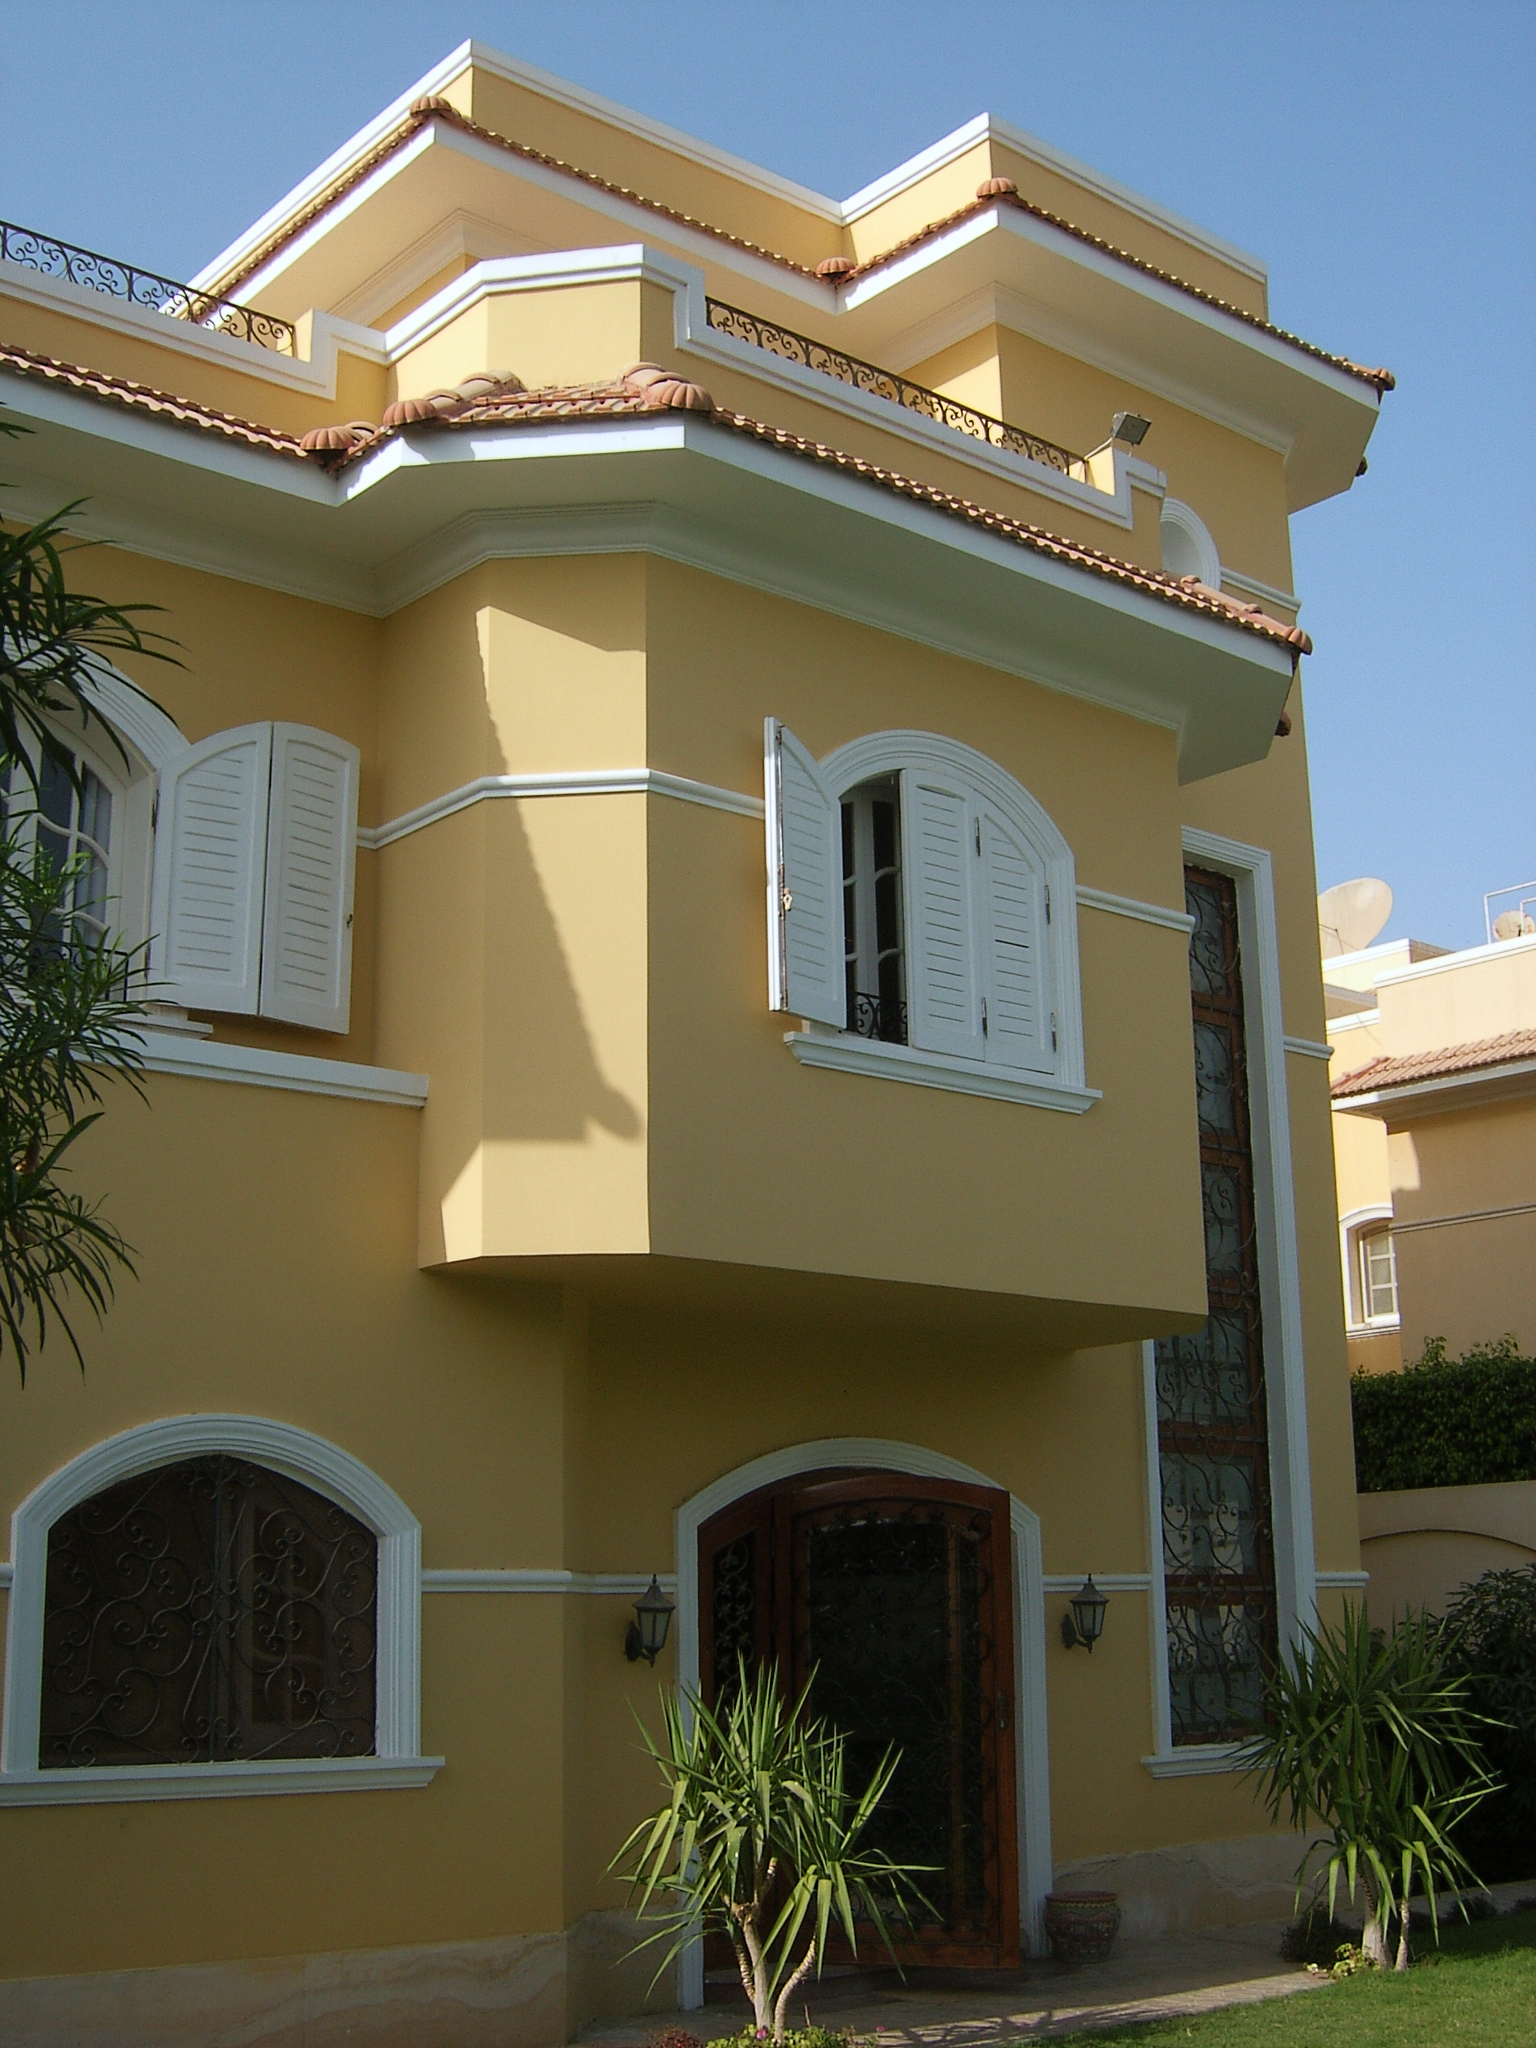 EgyptMainGate - Villa for rent semi furnished in 6 October